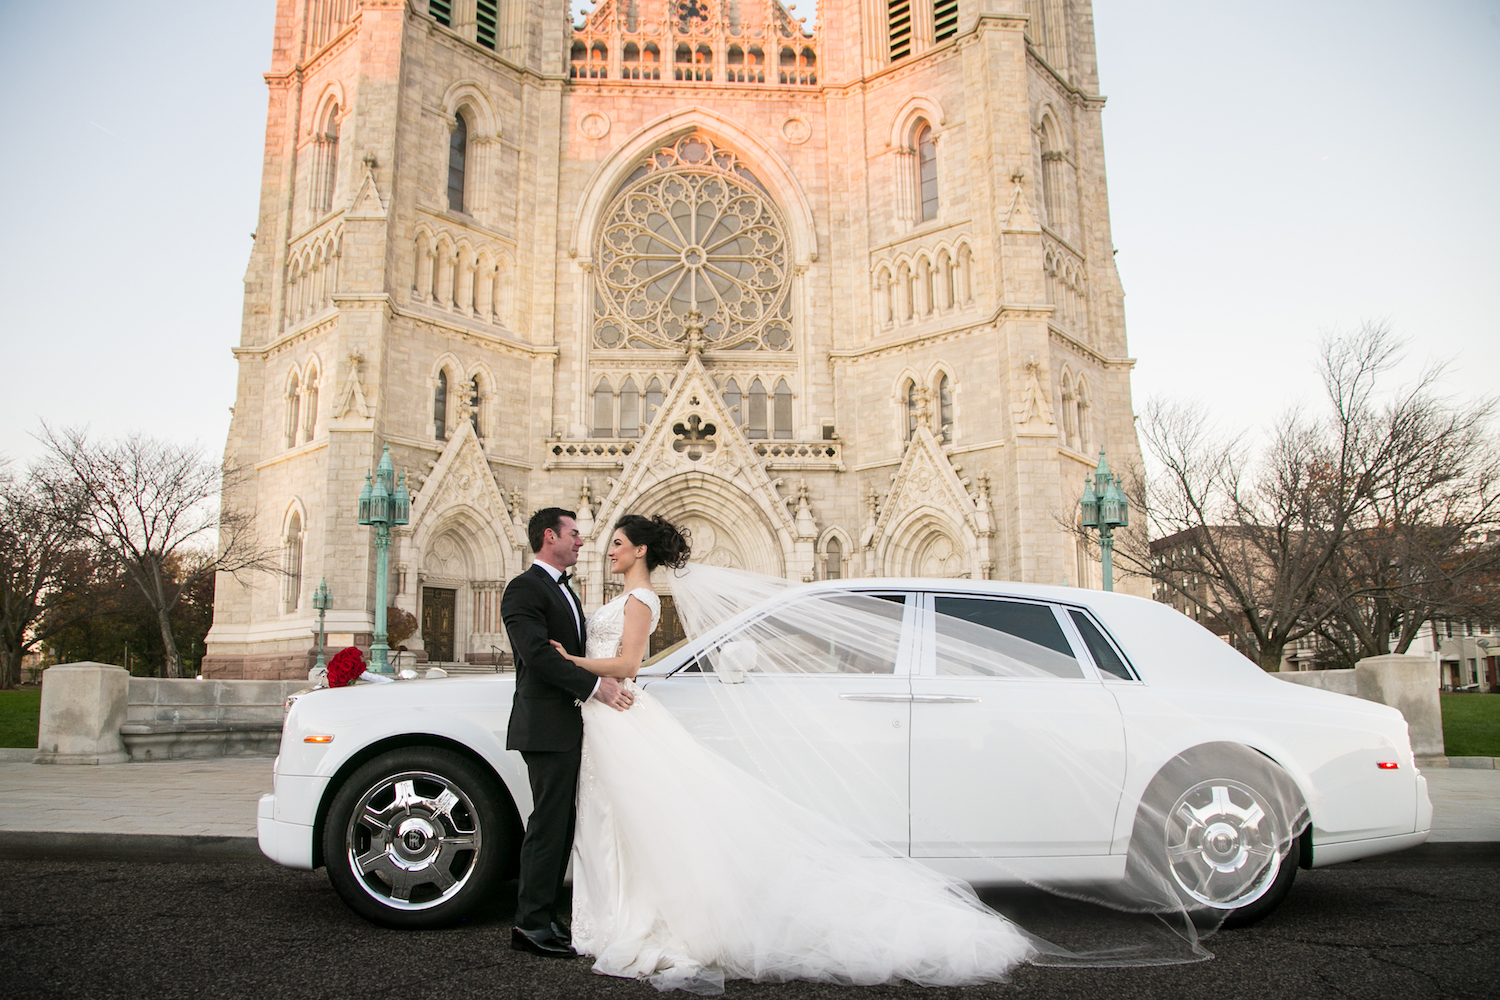 christian&jessica-embracing-by-classic-car-outside-church-nj-wedding-photography